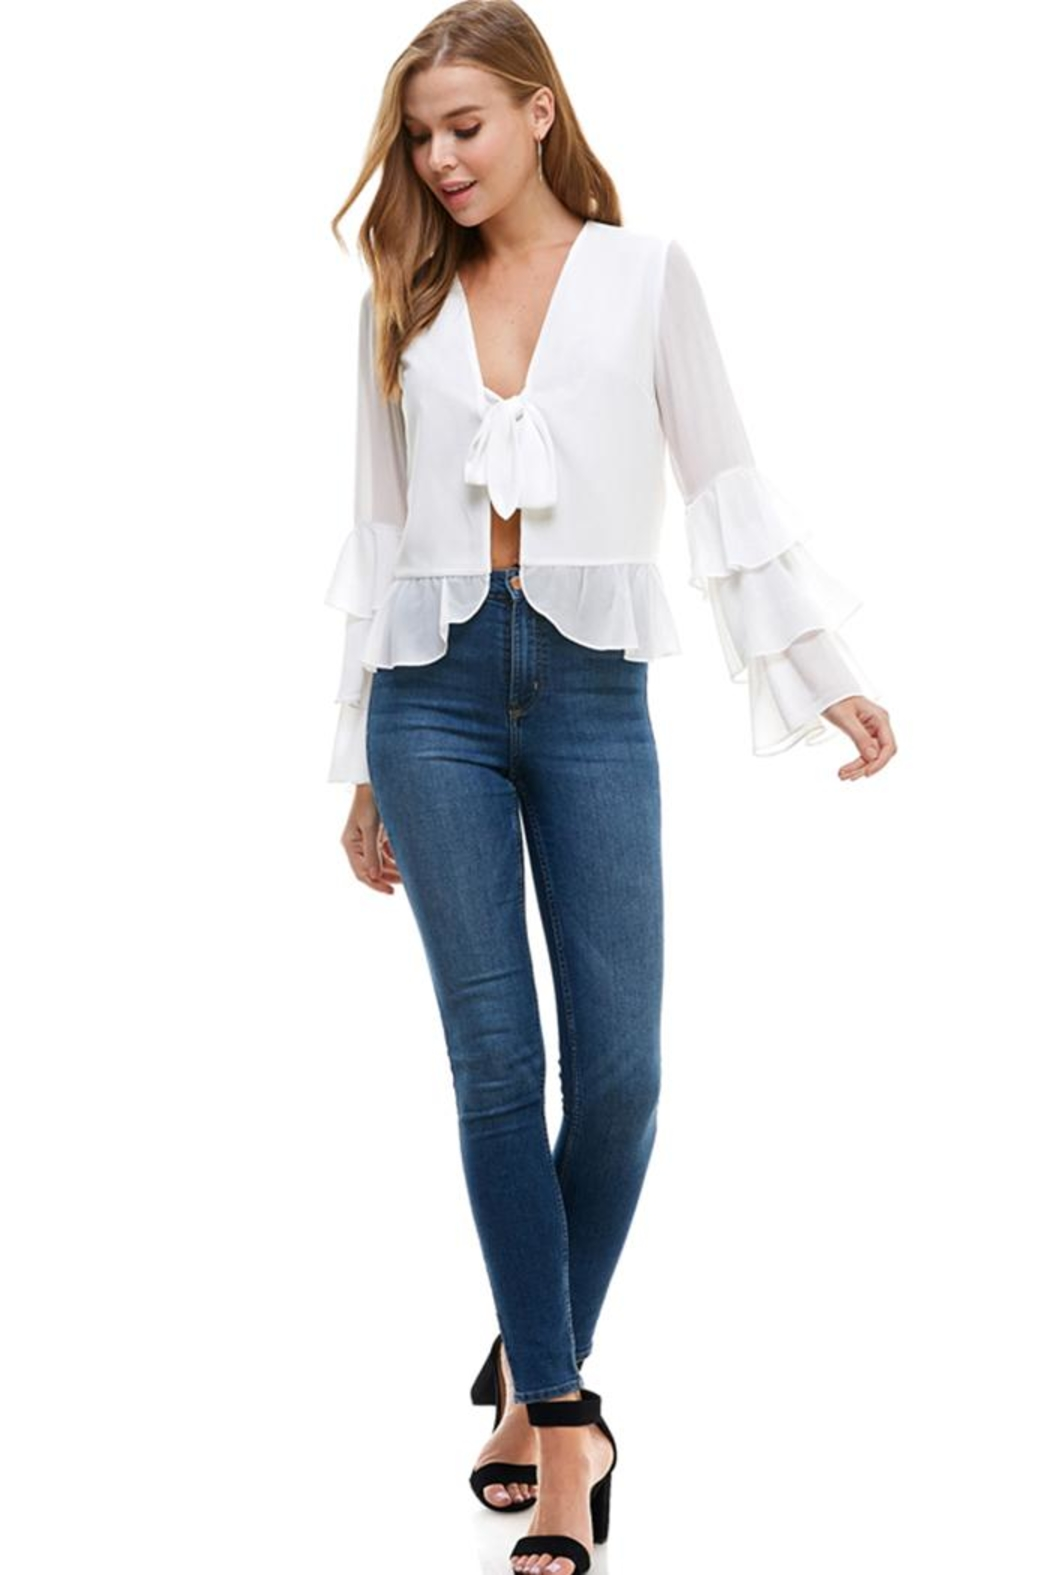 ACOA Open Tie Blouse - Front Cropped Image